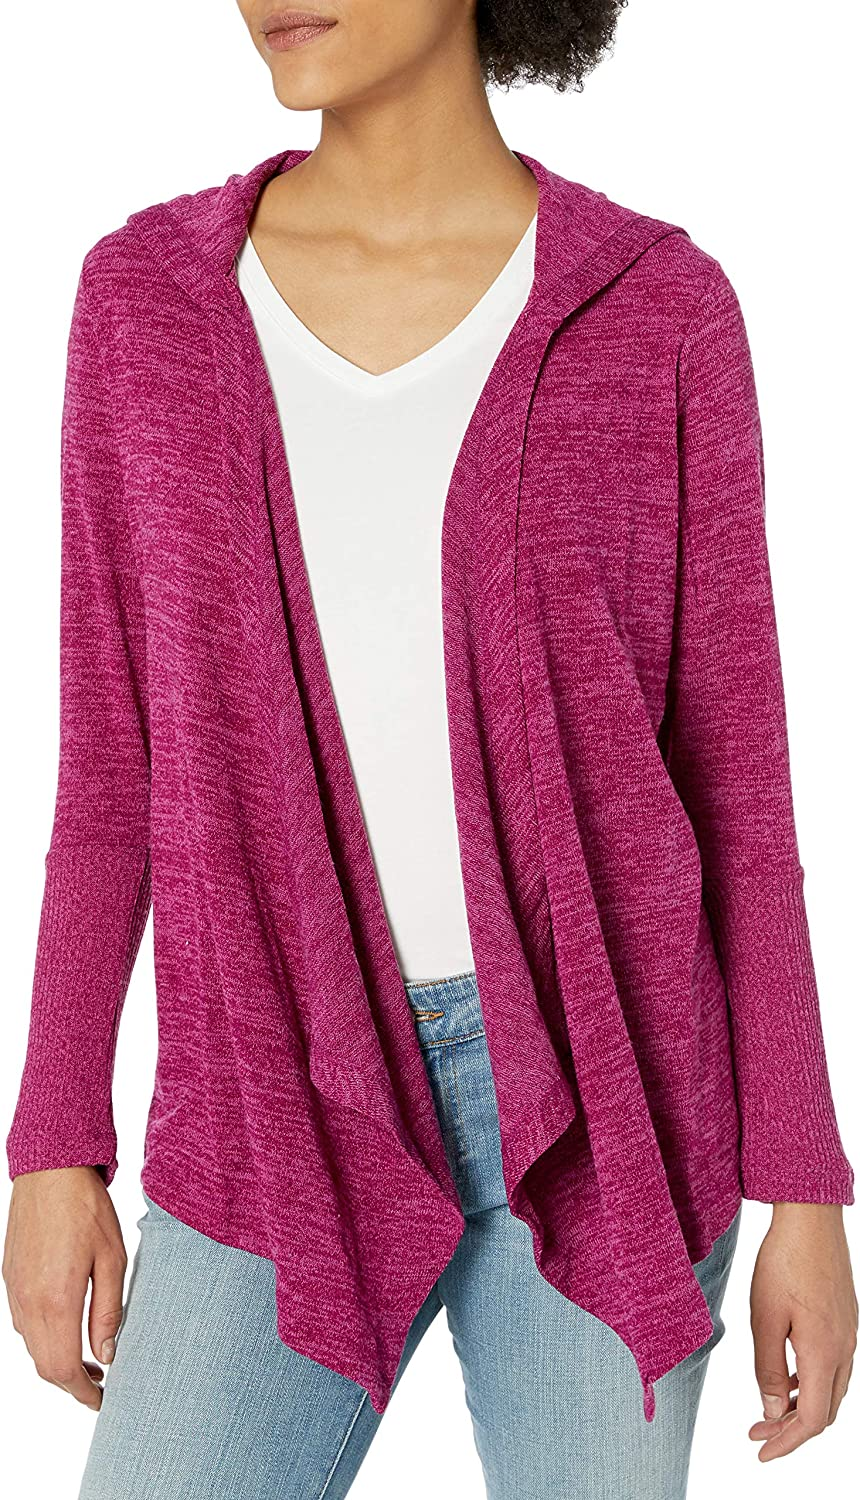 Ahh Wholesale By Rhonda 2021new shipping free shipping Shear Wrap Sweater Hooded Women's